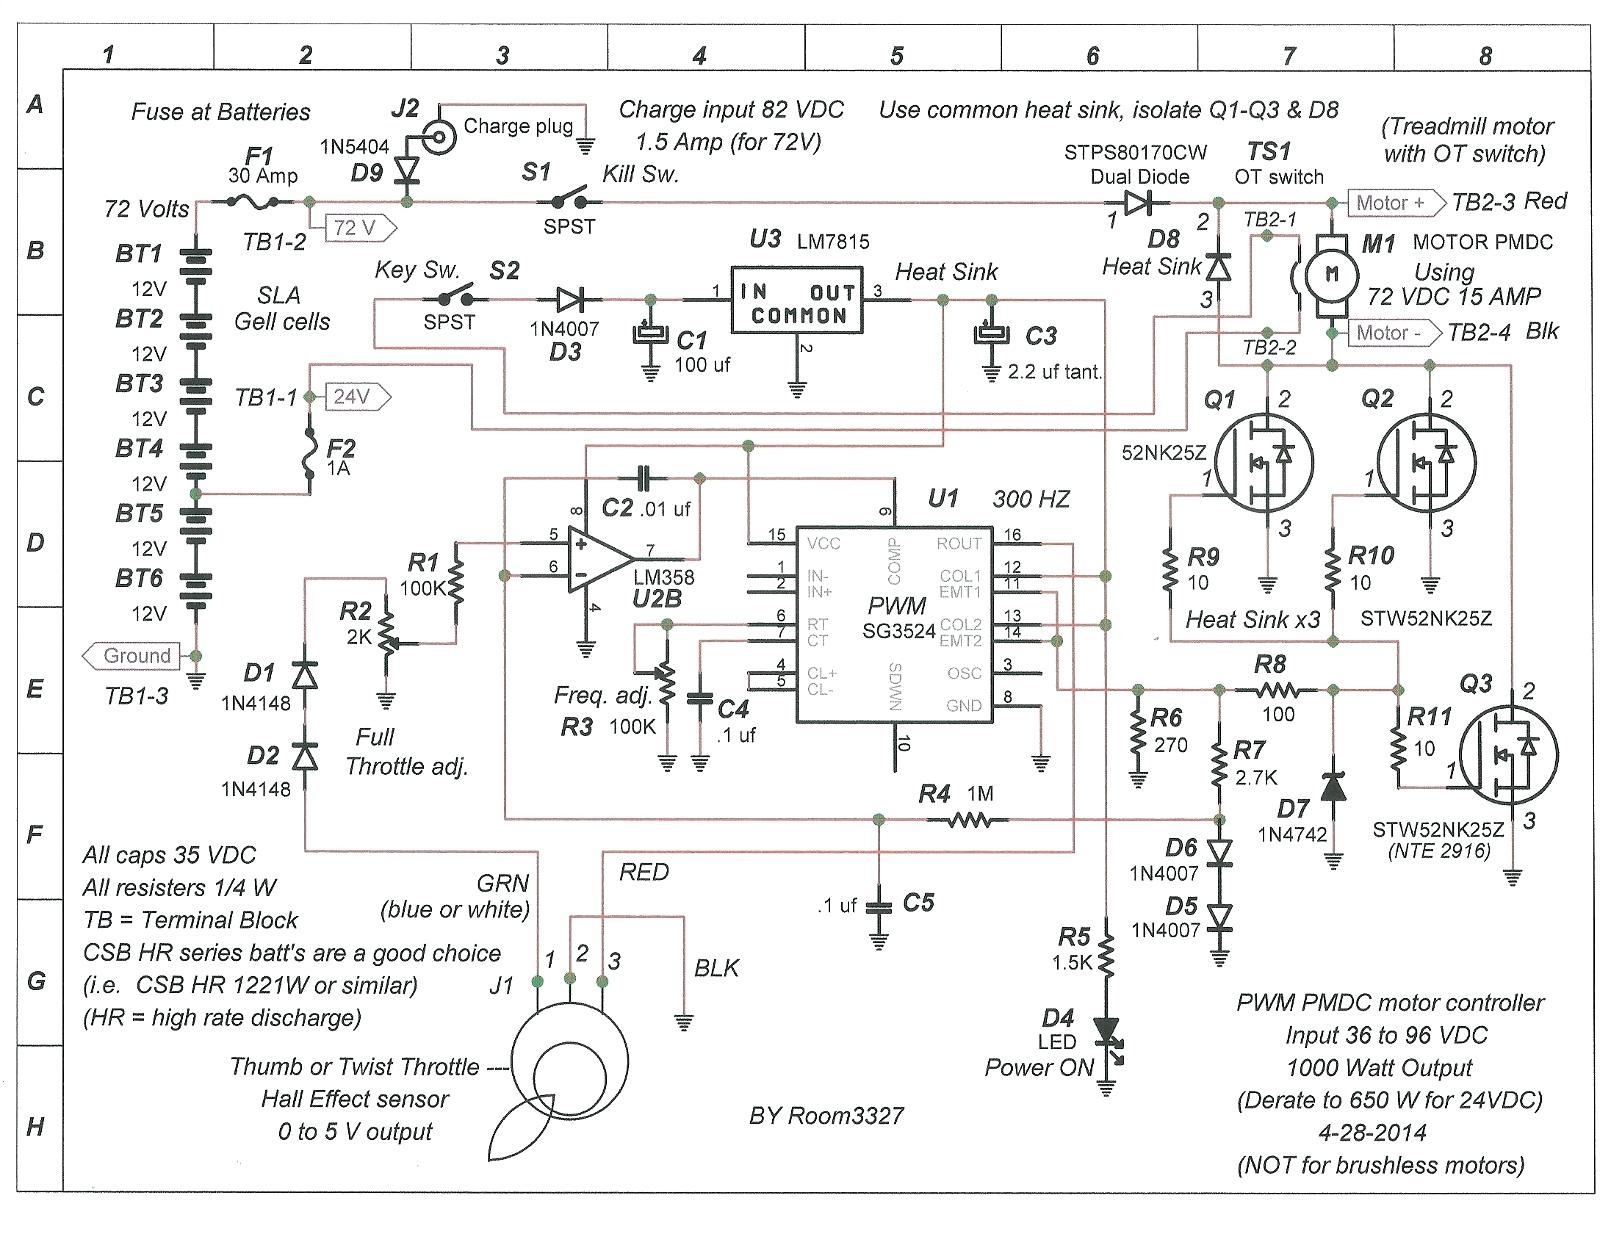 sole f63 wiring diagram Download-Wiring Diagram Treadmill Wiring Diagram Incline Motor T300 Mercial Treadmill User Manual Users Manual Jiangsu 9-o